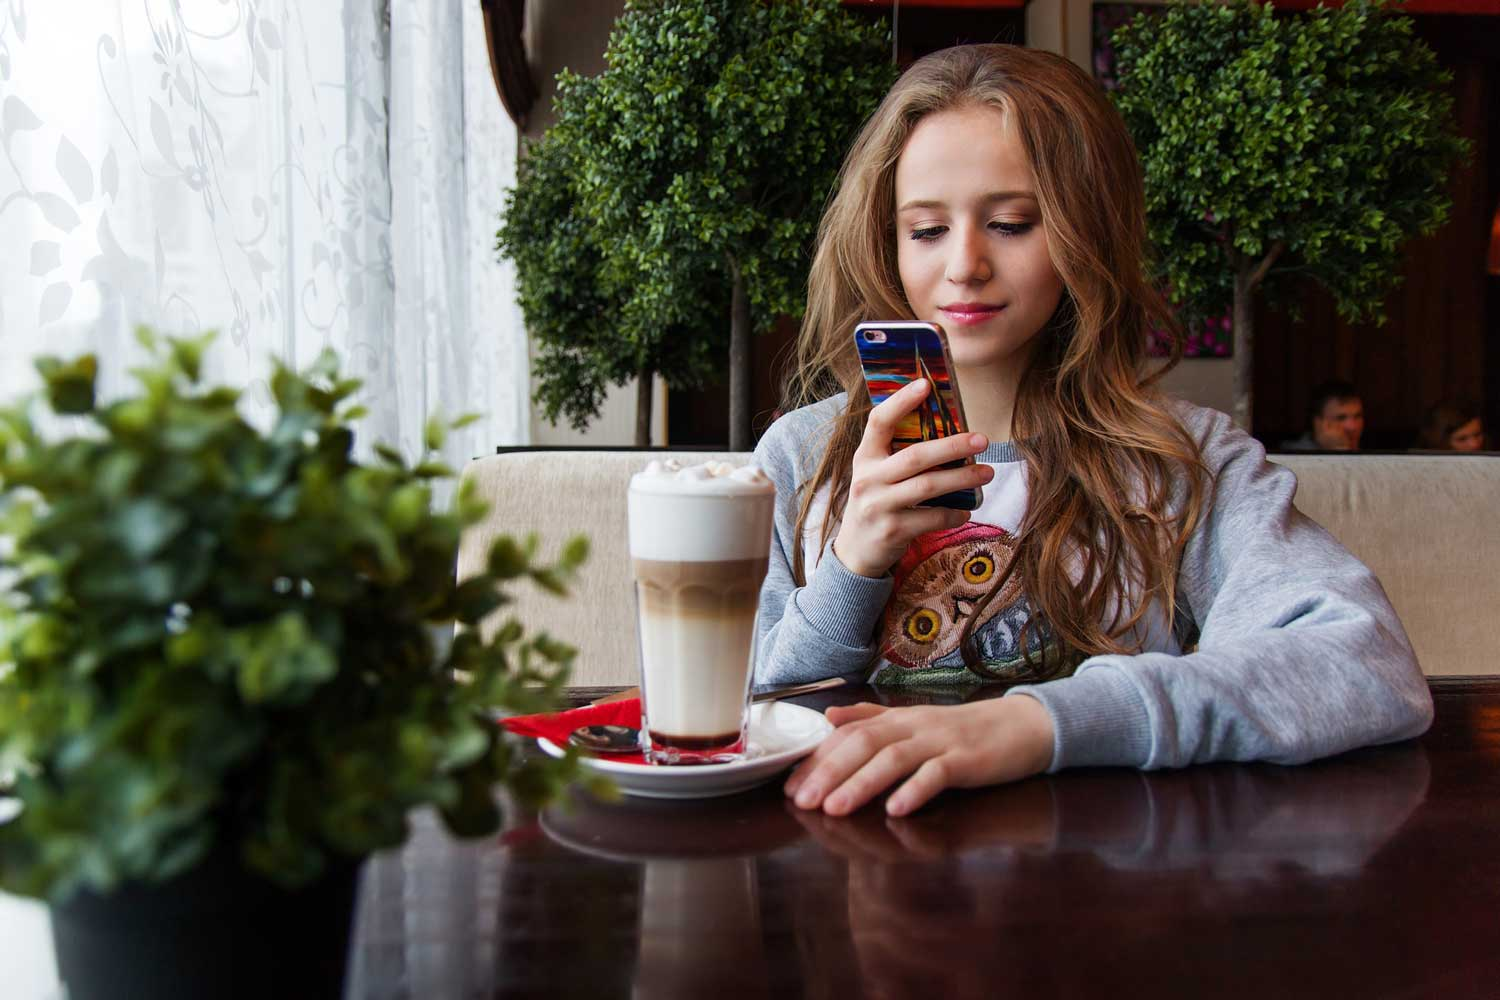 girl at a coffee shop on her phone